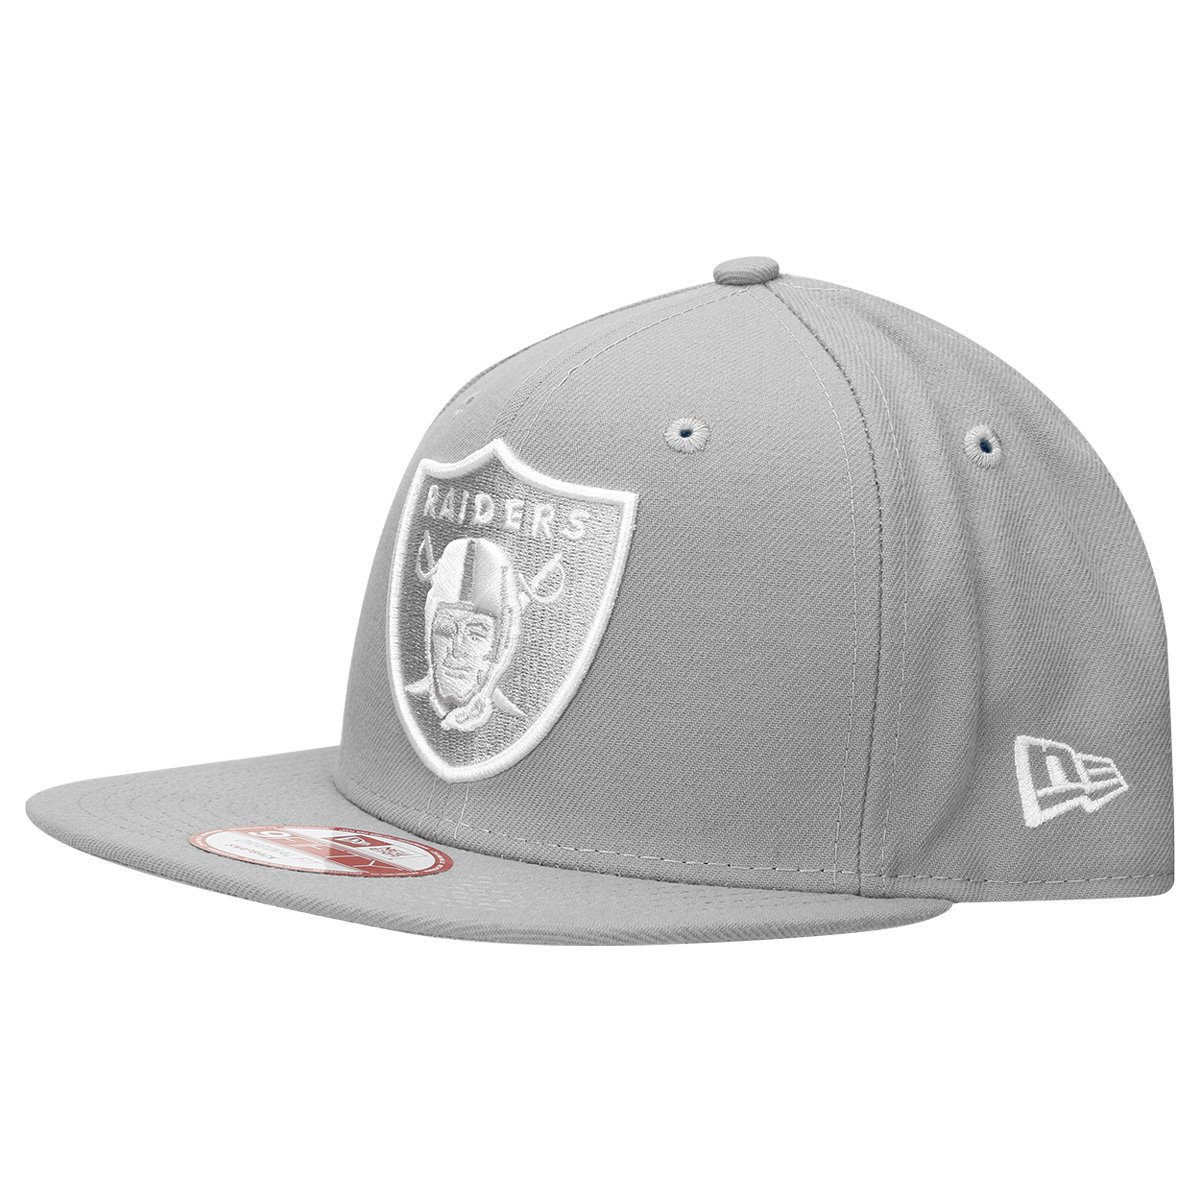 Boné New Era NFL 950 Of Sn White On Gray Oakland Raiders - Compre ... 142f7eb2e89